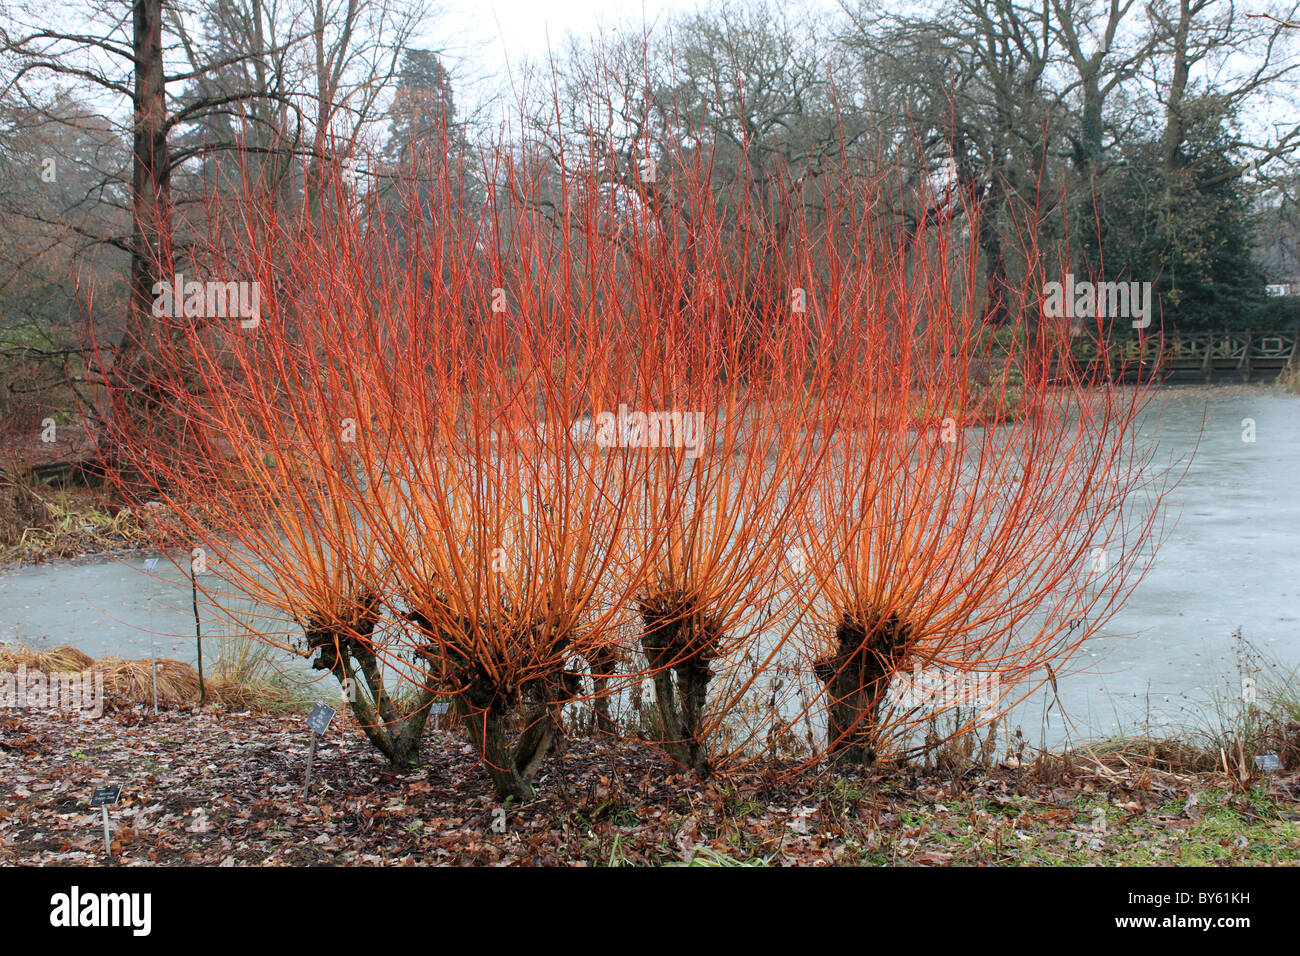 Colourful willow stems by the frozen lake in Seven Acres, RHS Garden Wisley, Surrey, England, Great Britain, UK, - Stock Image